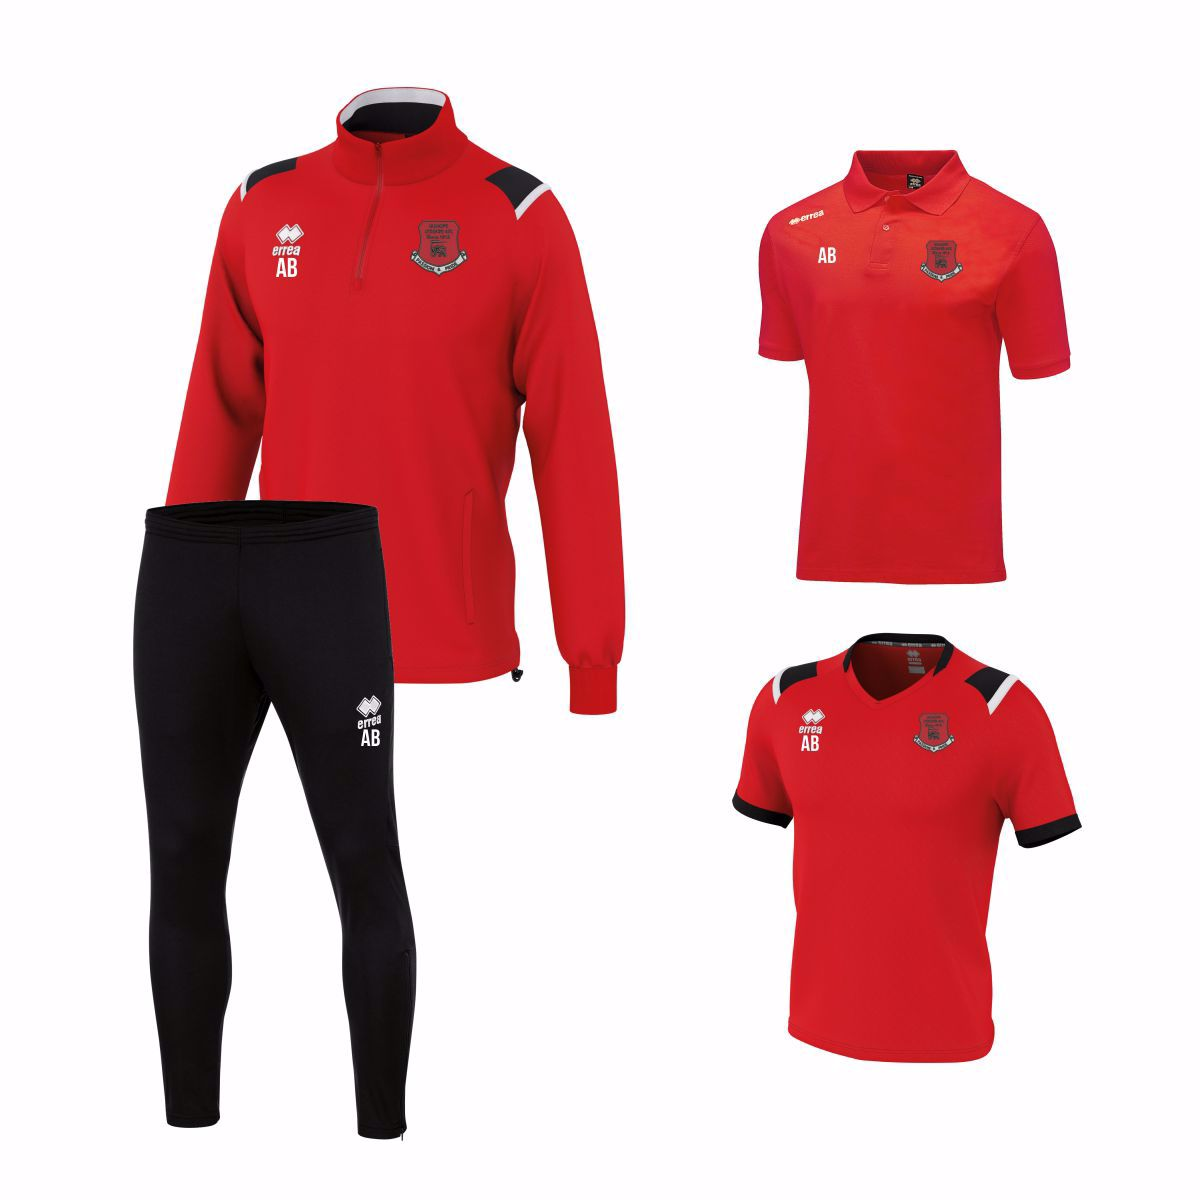 BISHOPS LYDEARDS FC PLAYERS PACK - Adult